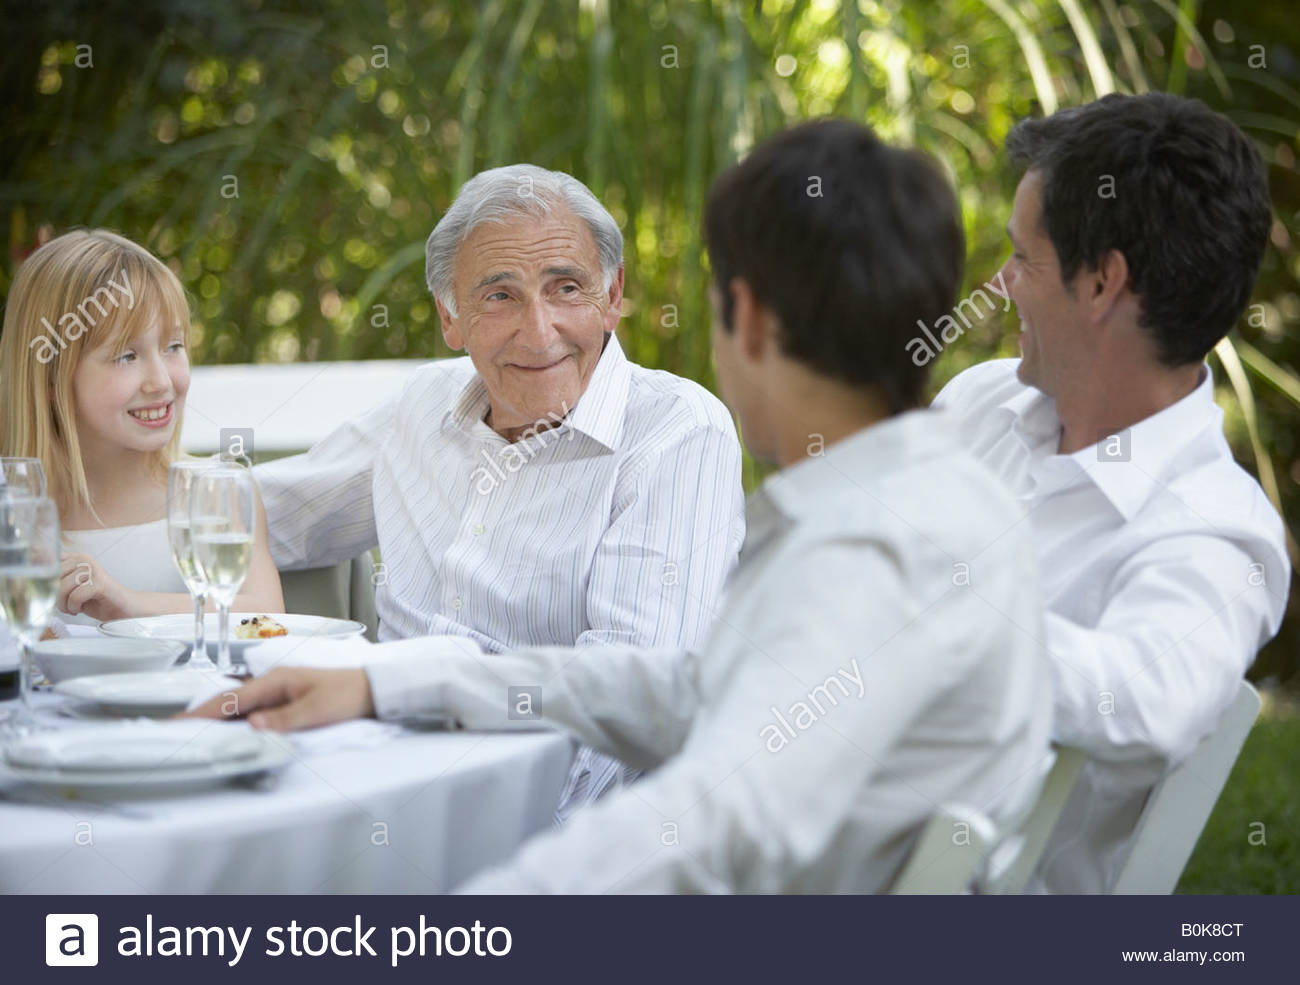 Senior man and young girl at outdoor party talking to two men and smiling - Stock Image